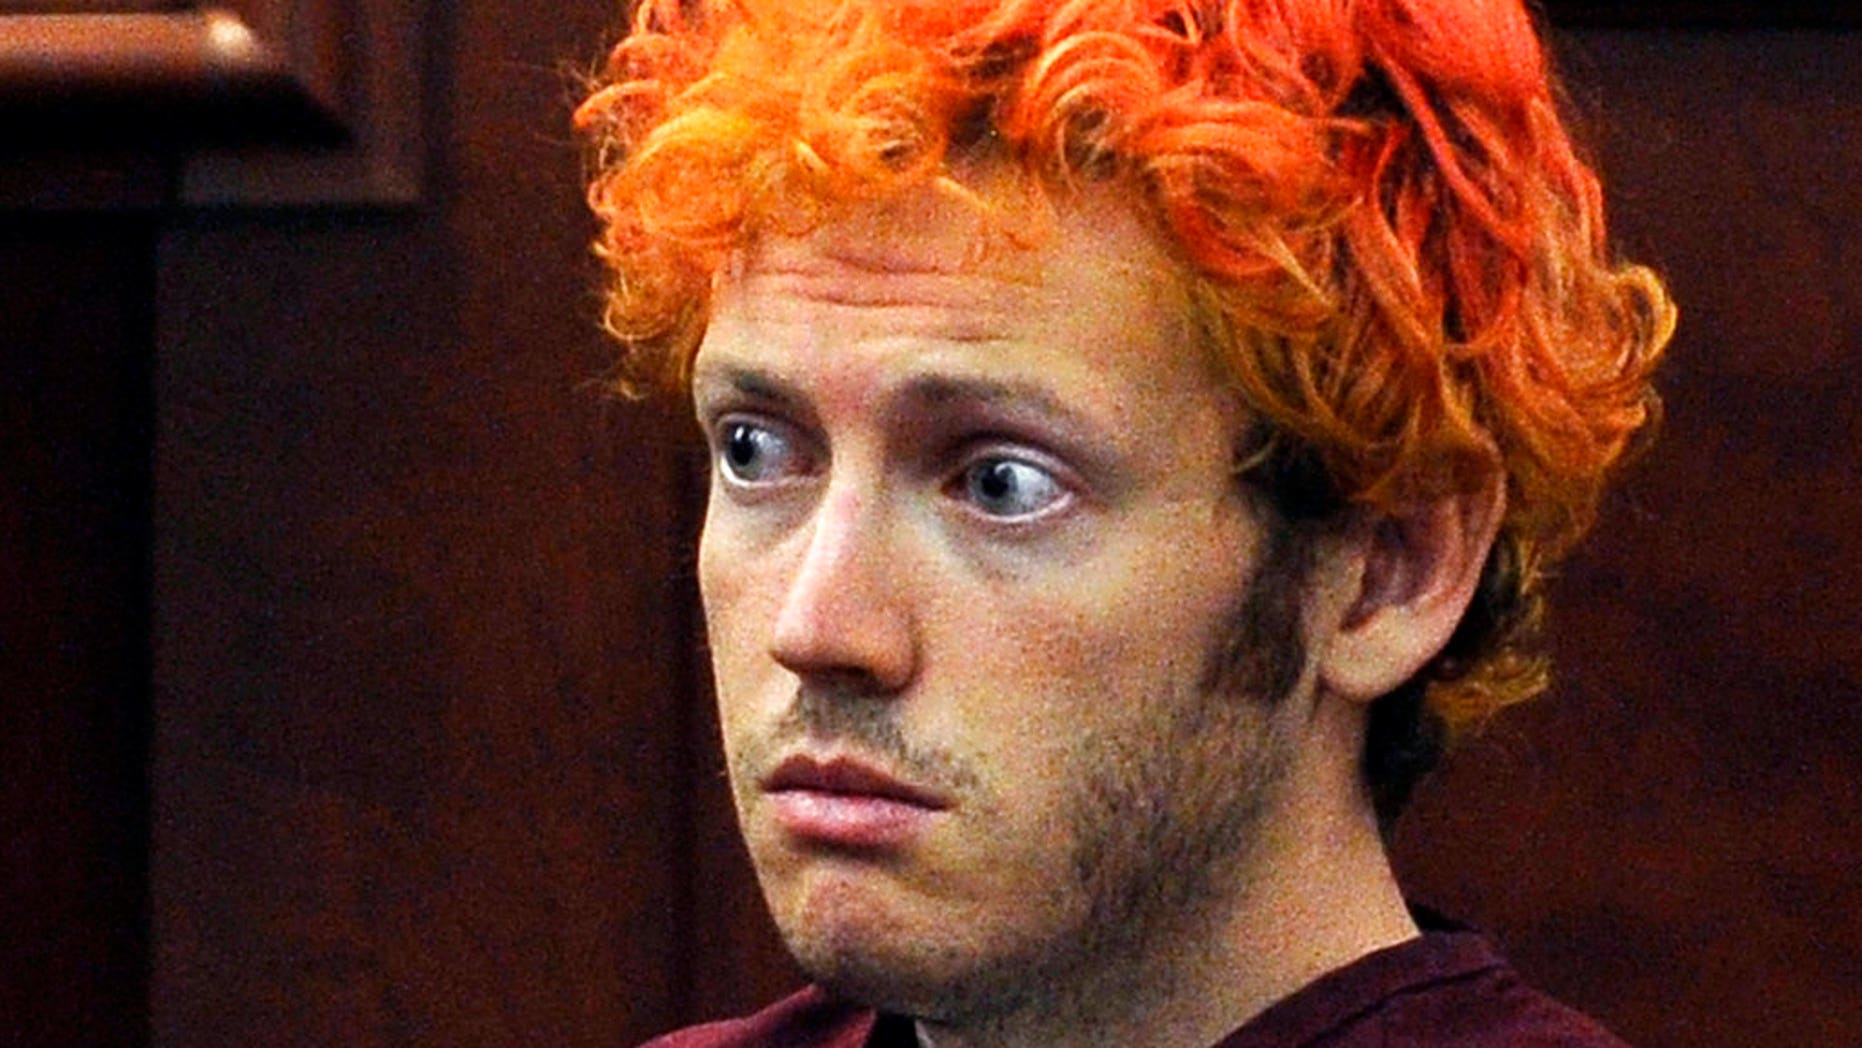 """James Holmes, the man who killed 12 people and wounded 58 others when he opened fire at a movie theater in Aurora, Colorado, in 2012, did what he did due to a range of factors """"in an unimaginably detailed and complex confluence,"""" a psychiatrist who interviewed Holmes said in a new book."""